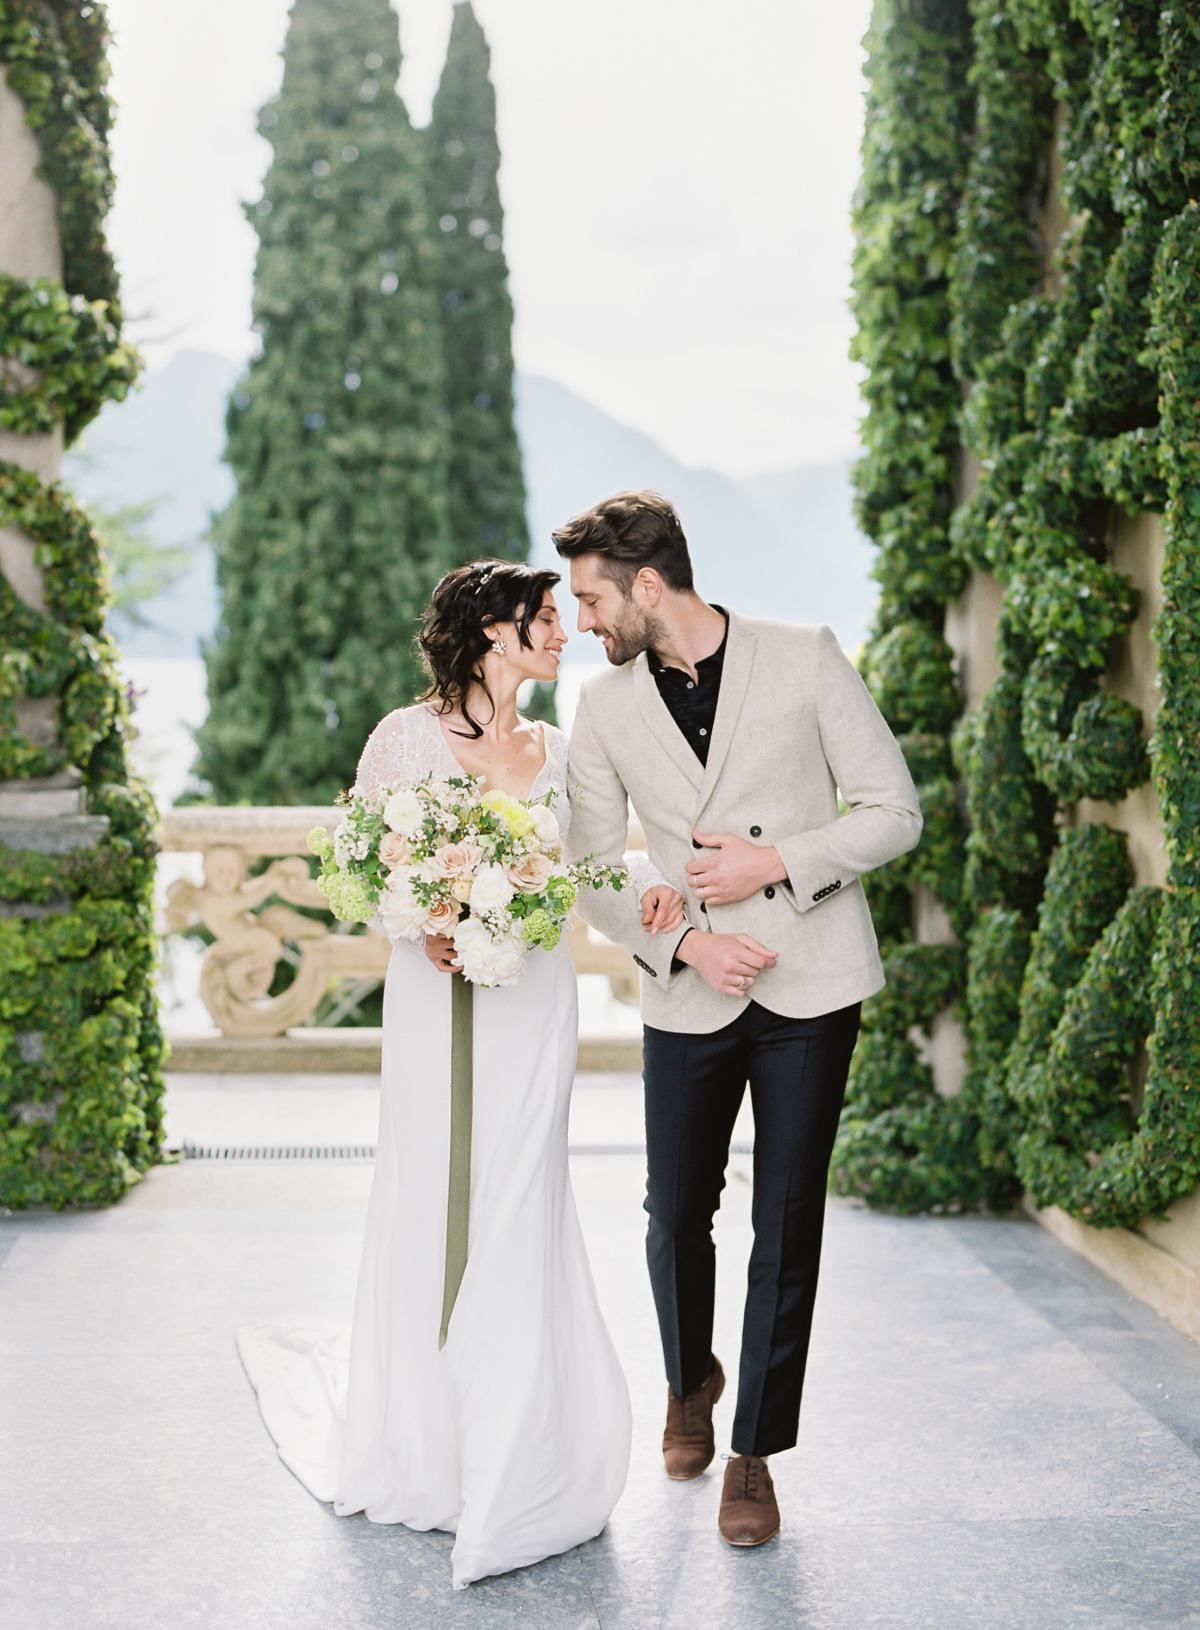 Lake Como Villa Del Balbianello Wedding Omalley Photographers 0003